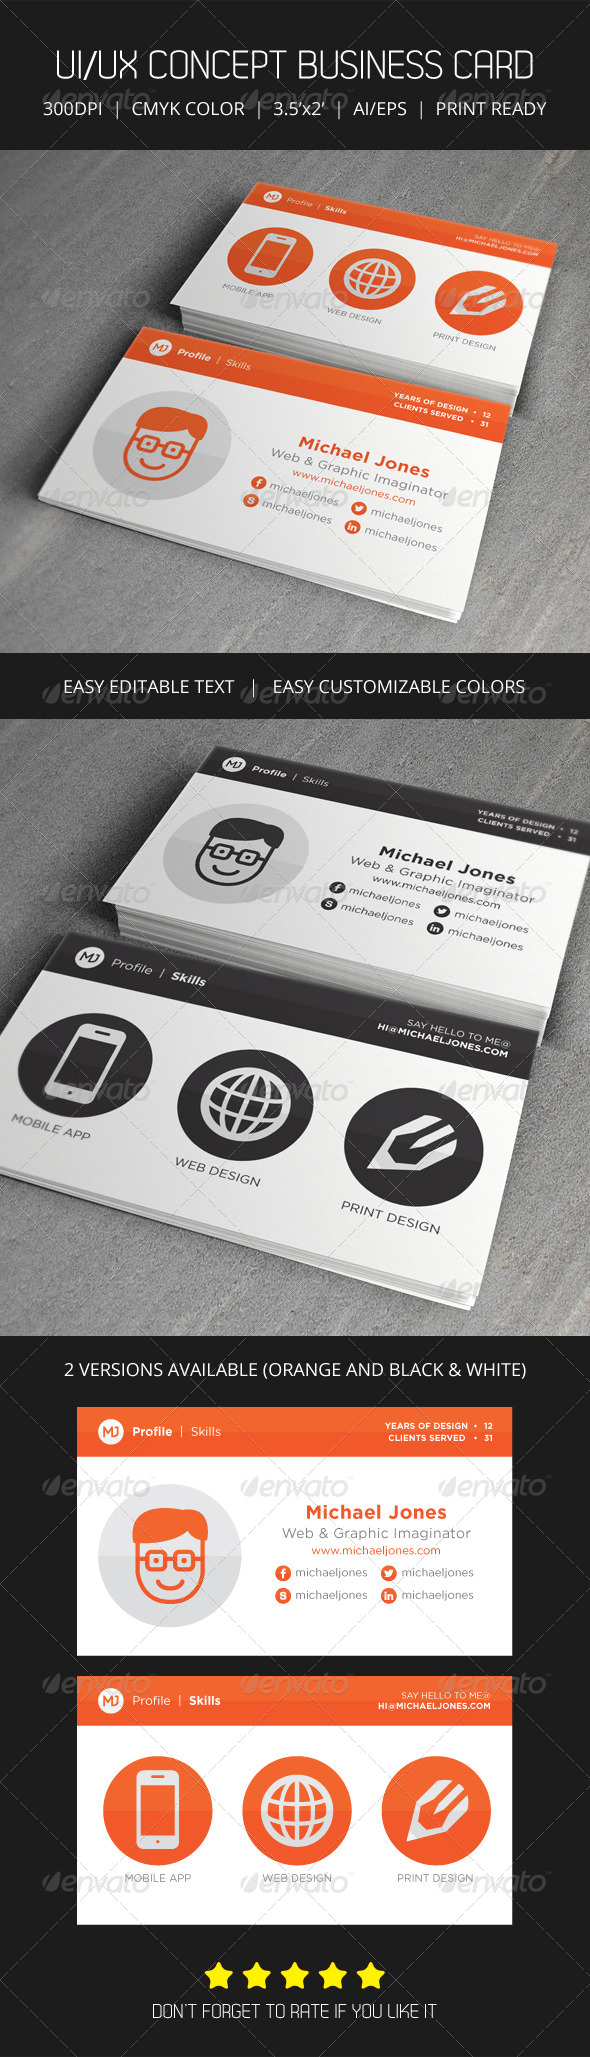 UI/UX Flat Creative Business Card - Creative Business Cards